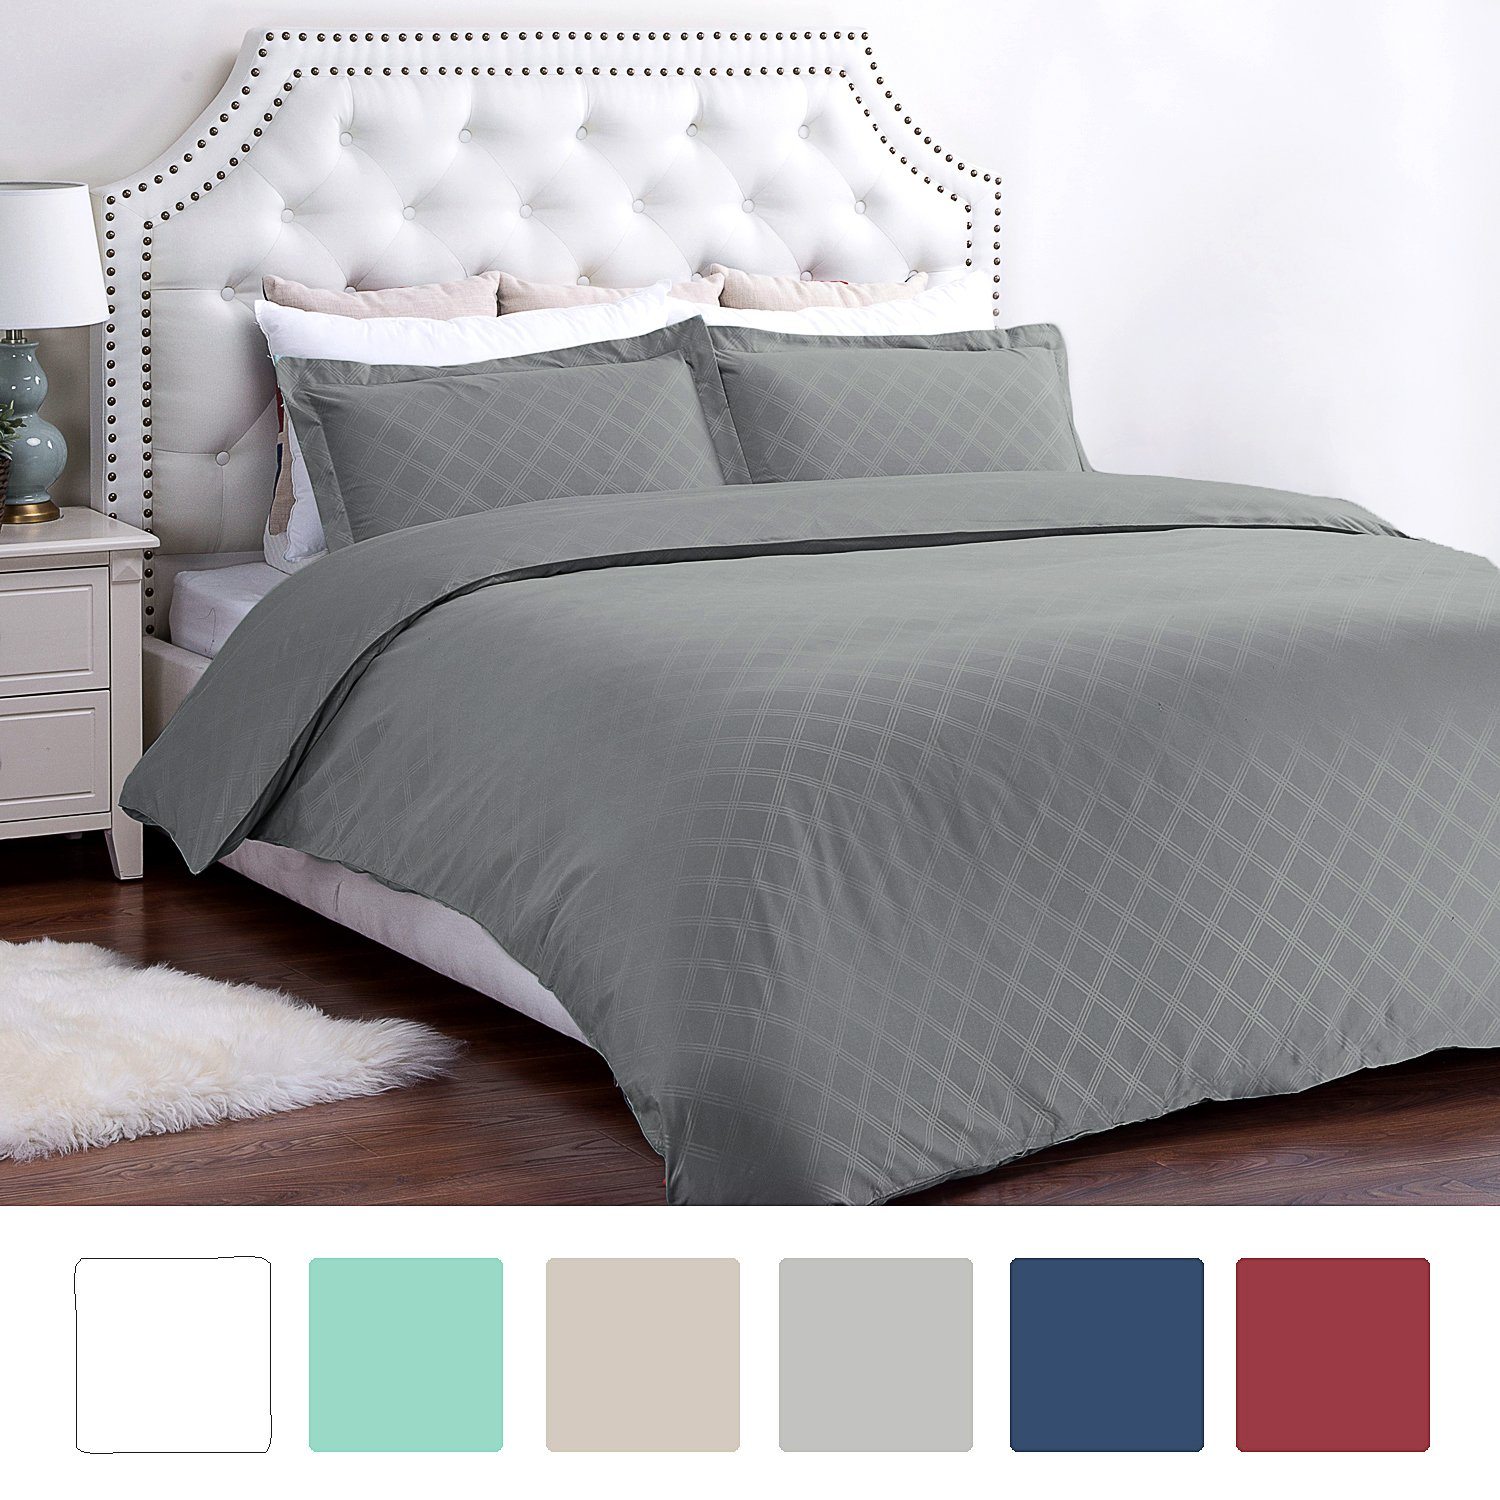 Bedsure Holloway 3 Piece Duvet Cover Set